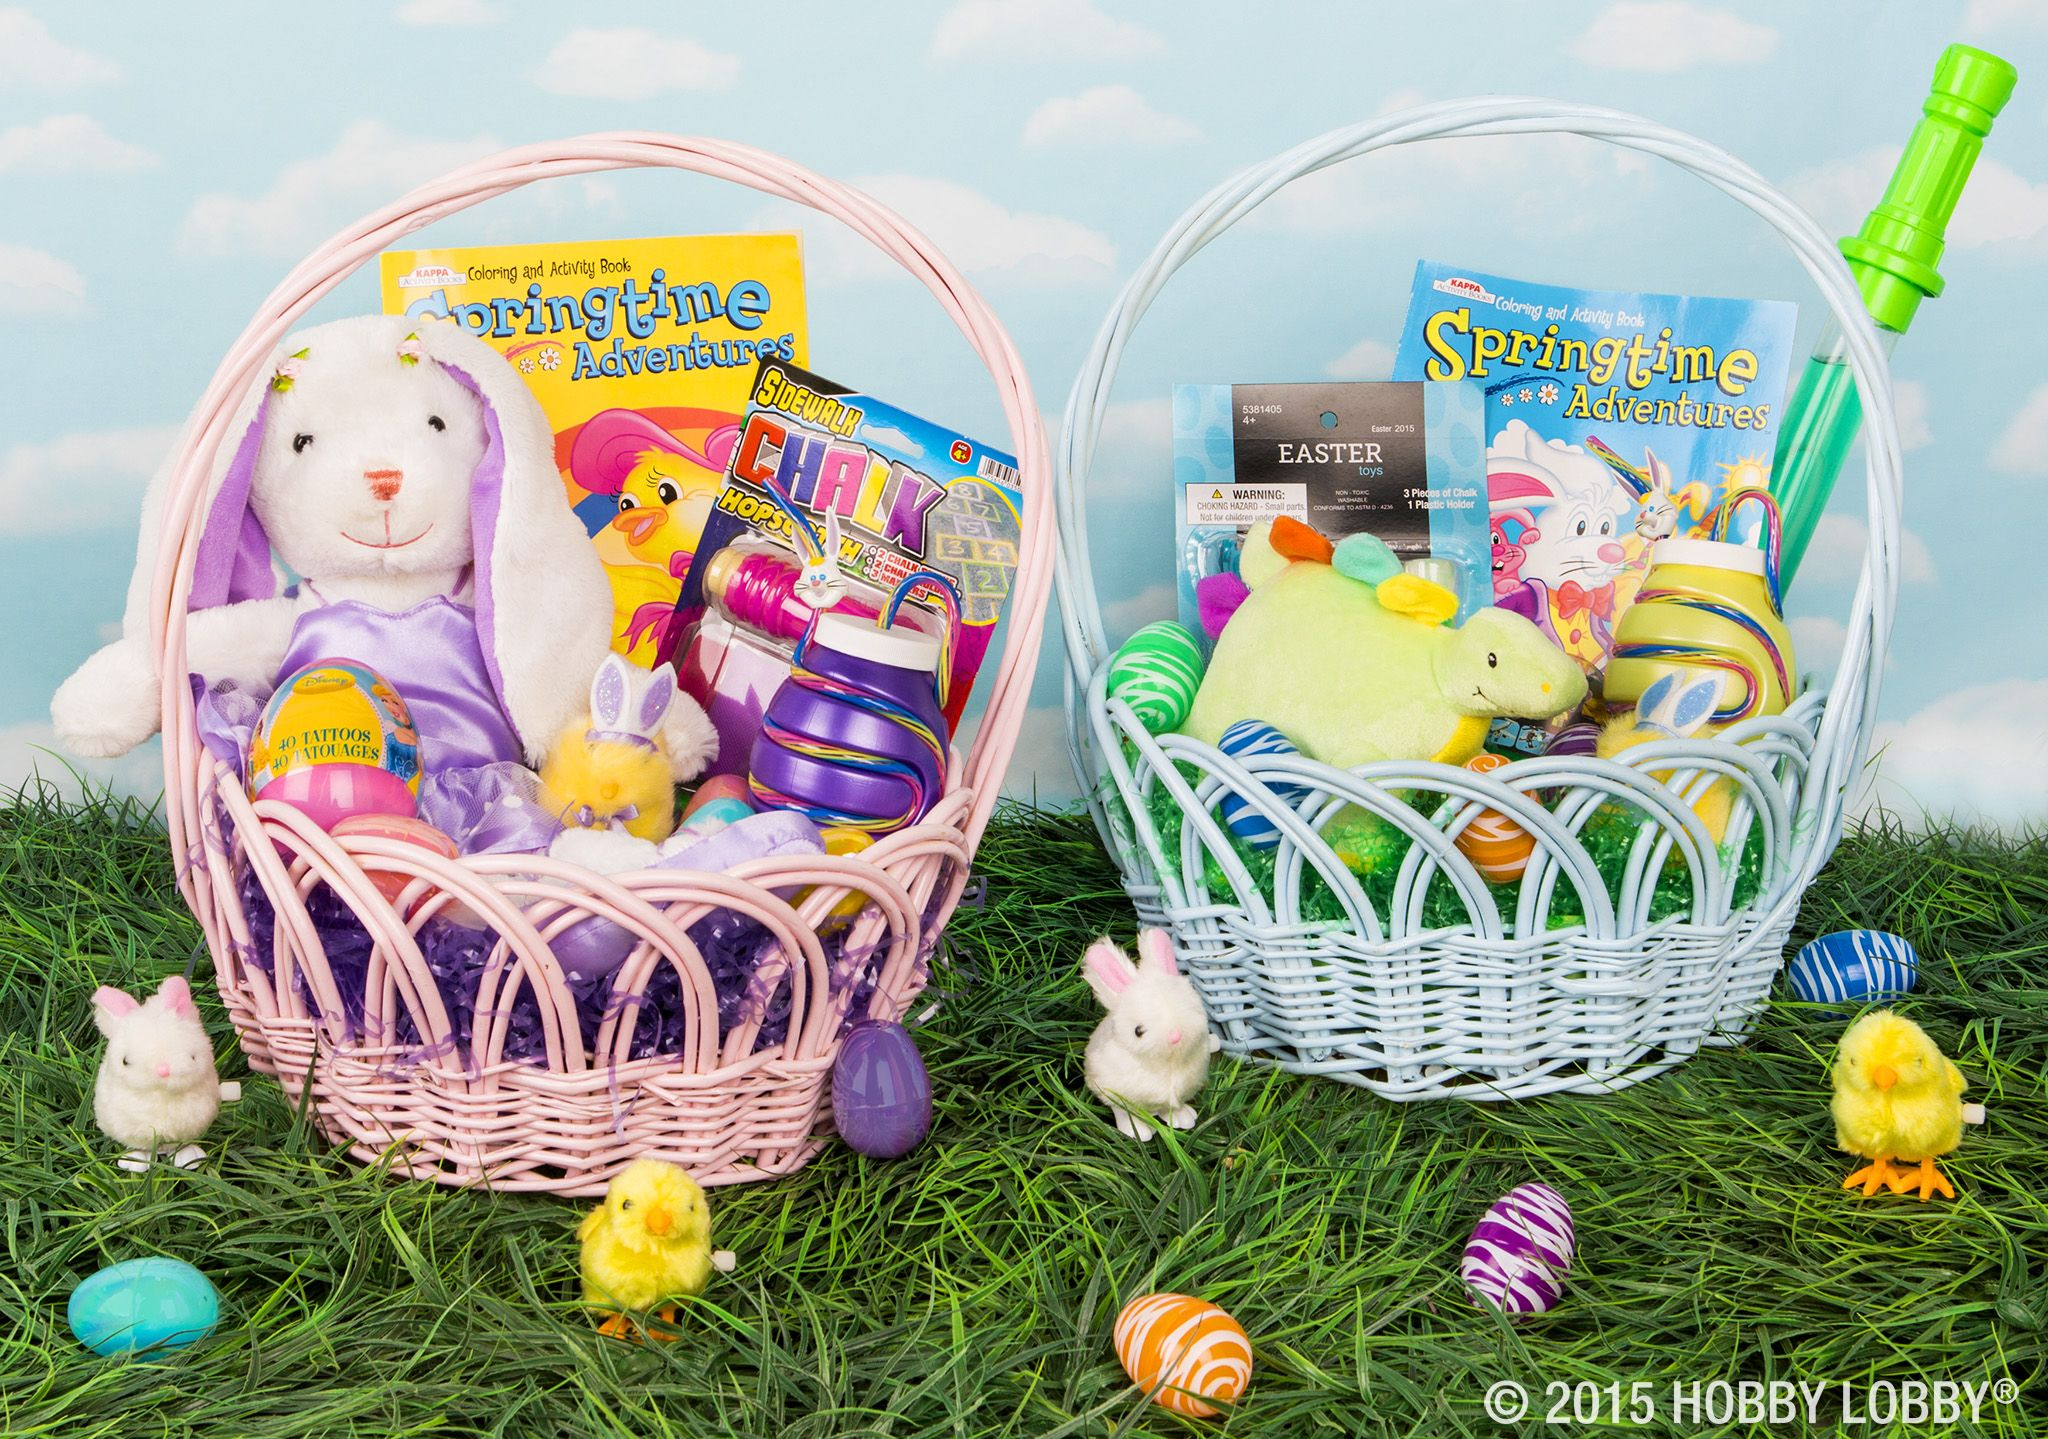 Give your snuggle bunnies a basket full of smiles this Easter!